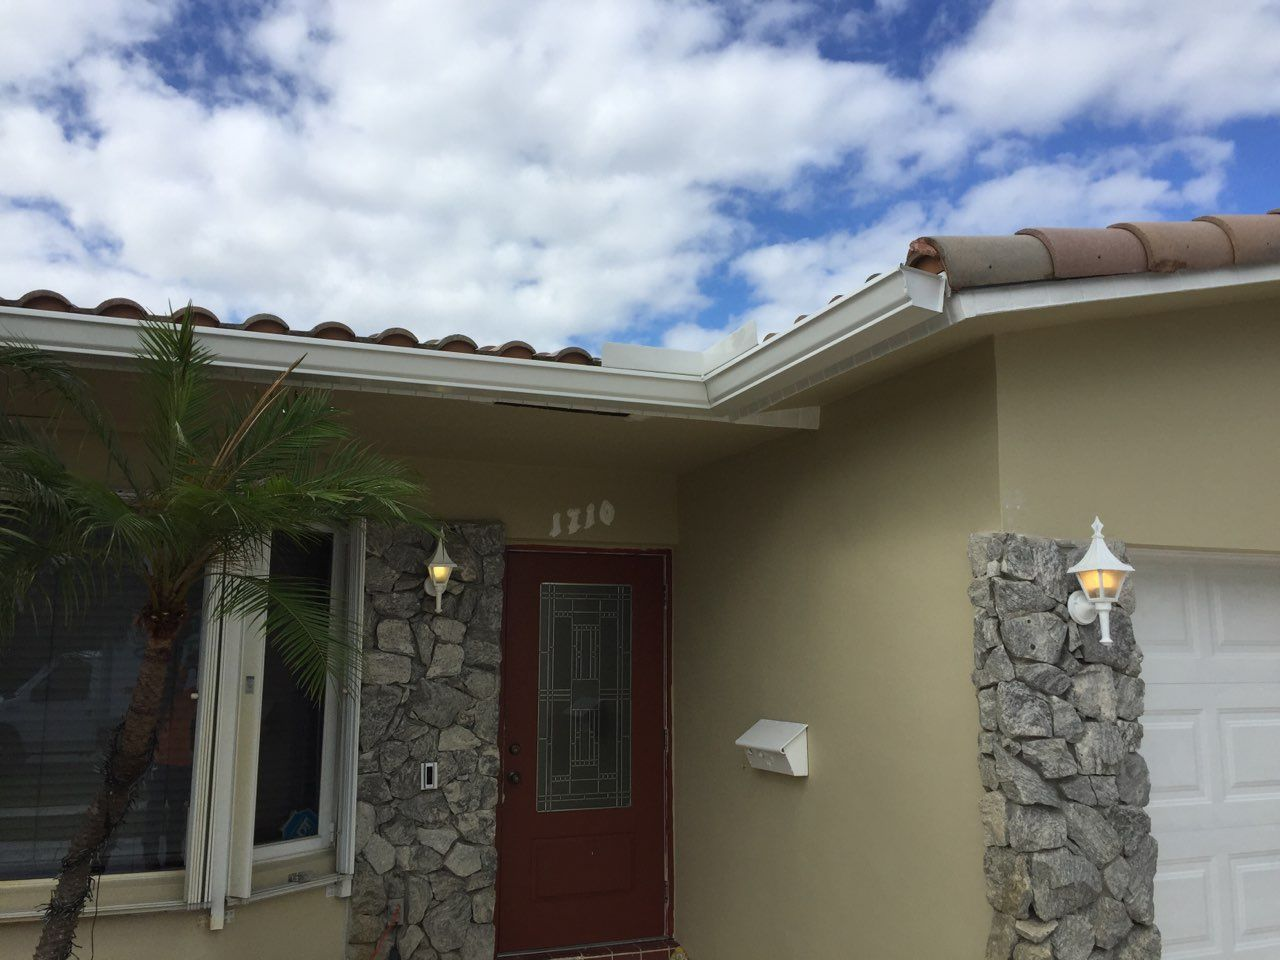 Are your gutters in need of a good cleaning? We can help! Contact us today!   www.theaffordablegutters.com  #TheAffordableGutters #GutterCleaning #CleanedGutters #GutterServices #GutterRepair #DelrayBeach #Delray #SouthFlorida #Pompano #MiamiDade #Broward #WestPalmBeach #HomeOwners #Realtors #RealEstate